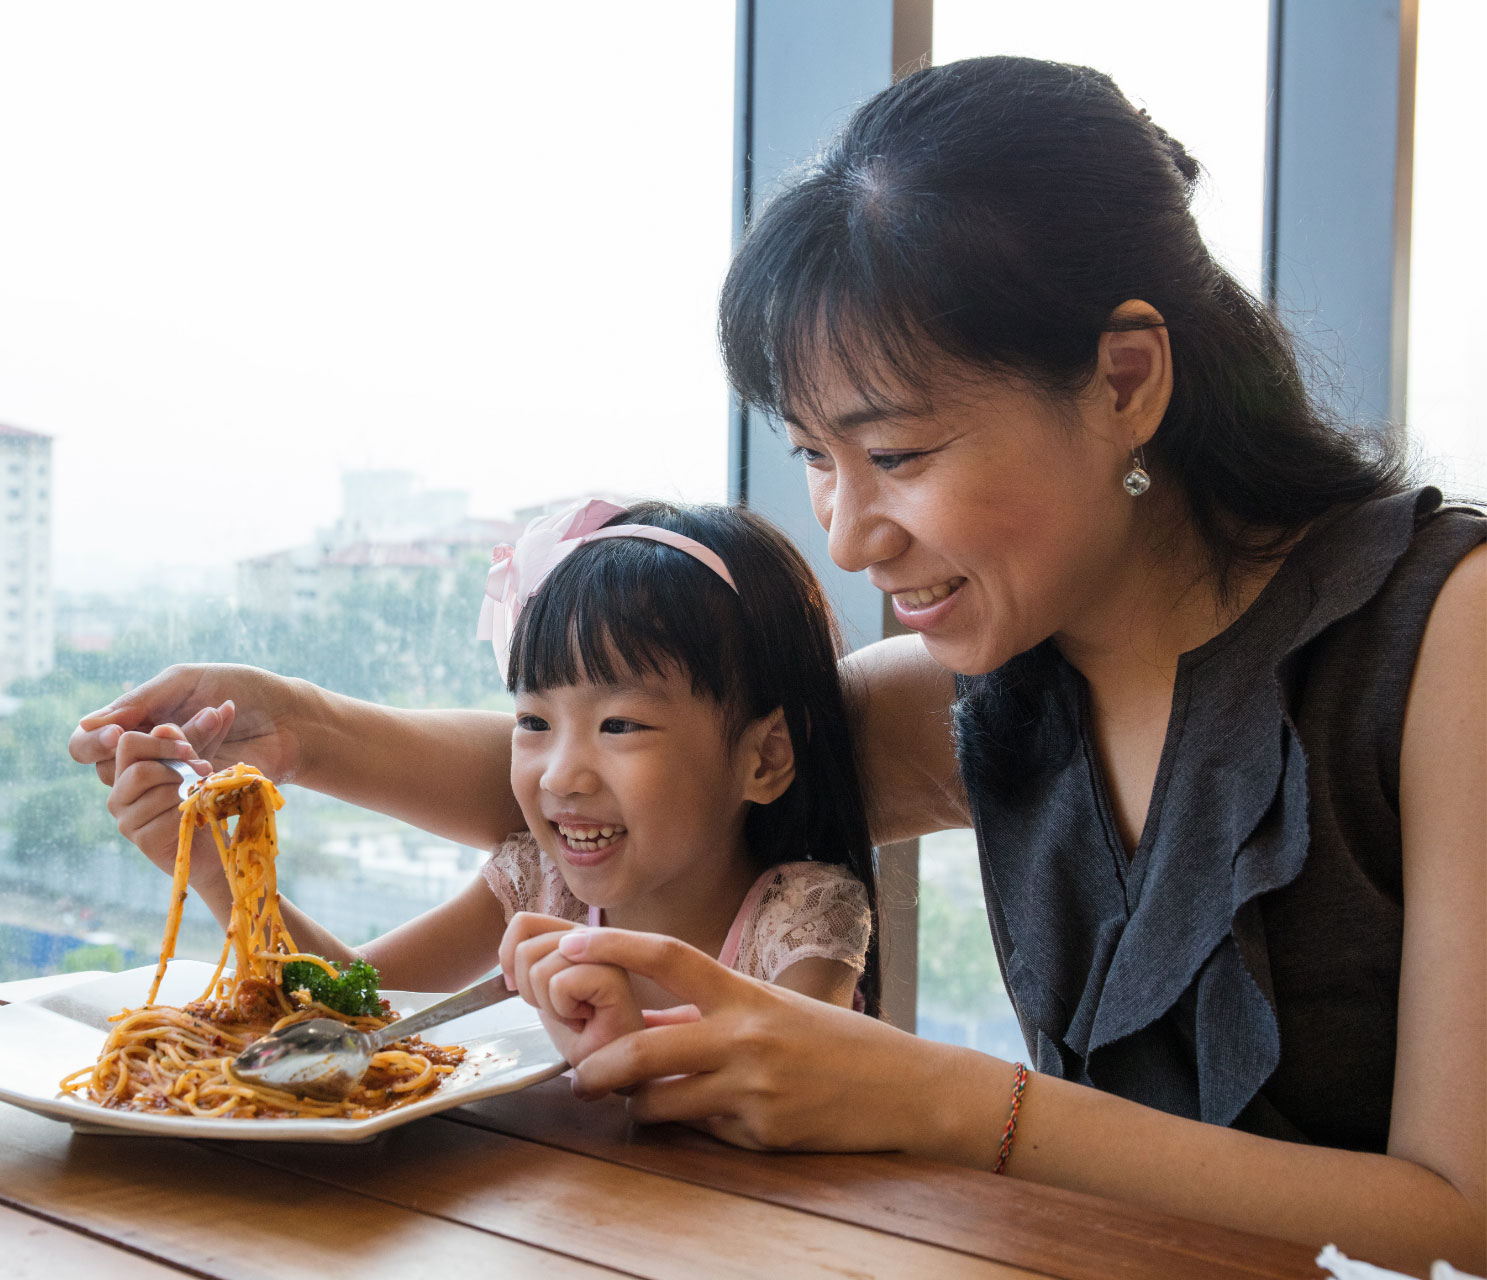 Smiling business woman at the dinner table with her young daughter, helping her eat a plate of noodles. Both are smiling and enjoying quality time together.